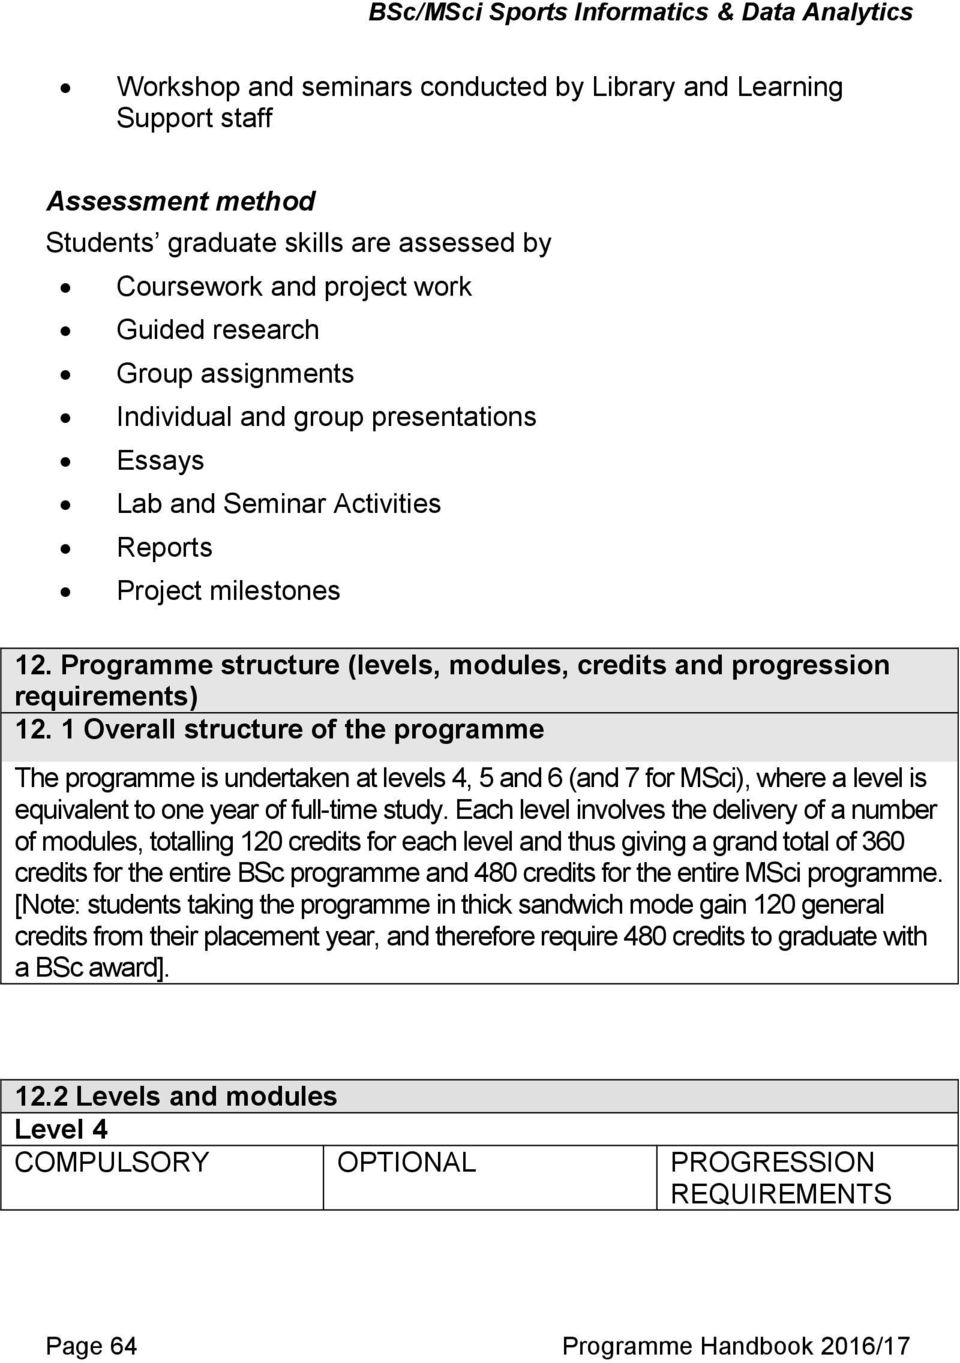 1 Overall structure of the programme The programme is undertaken at levels 4, 5 and 6 (and 7 for MSci), where a level is equivalent to one year of full-time study.